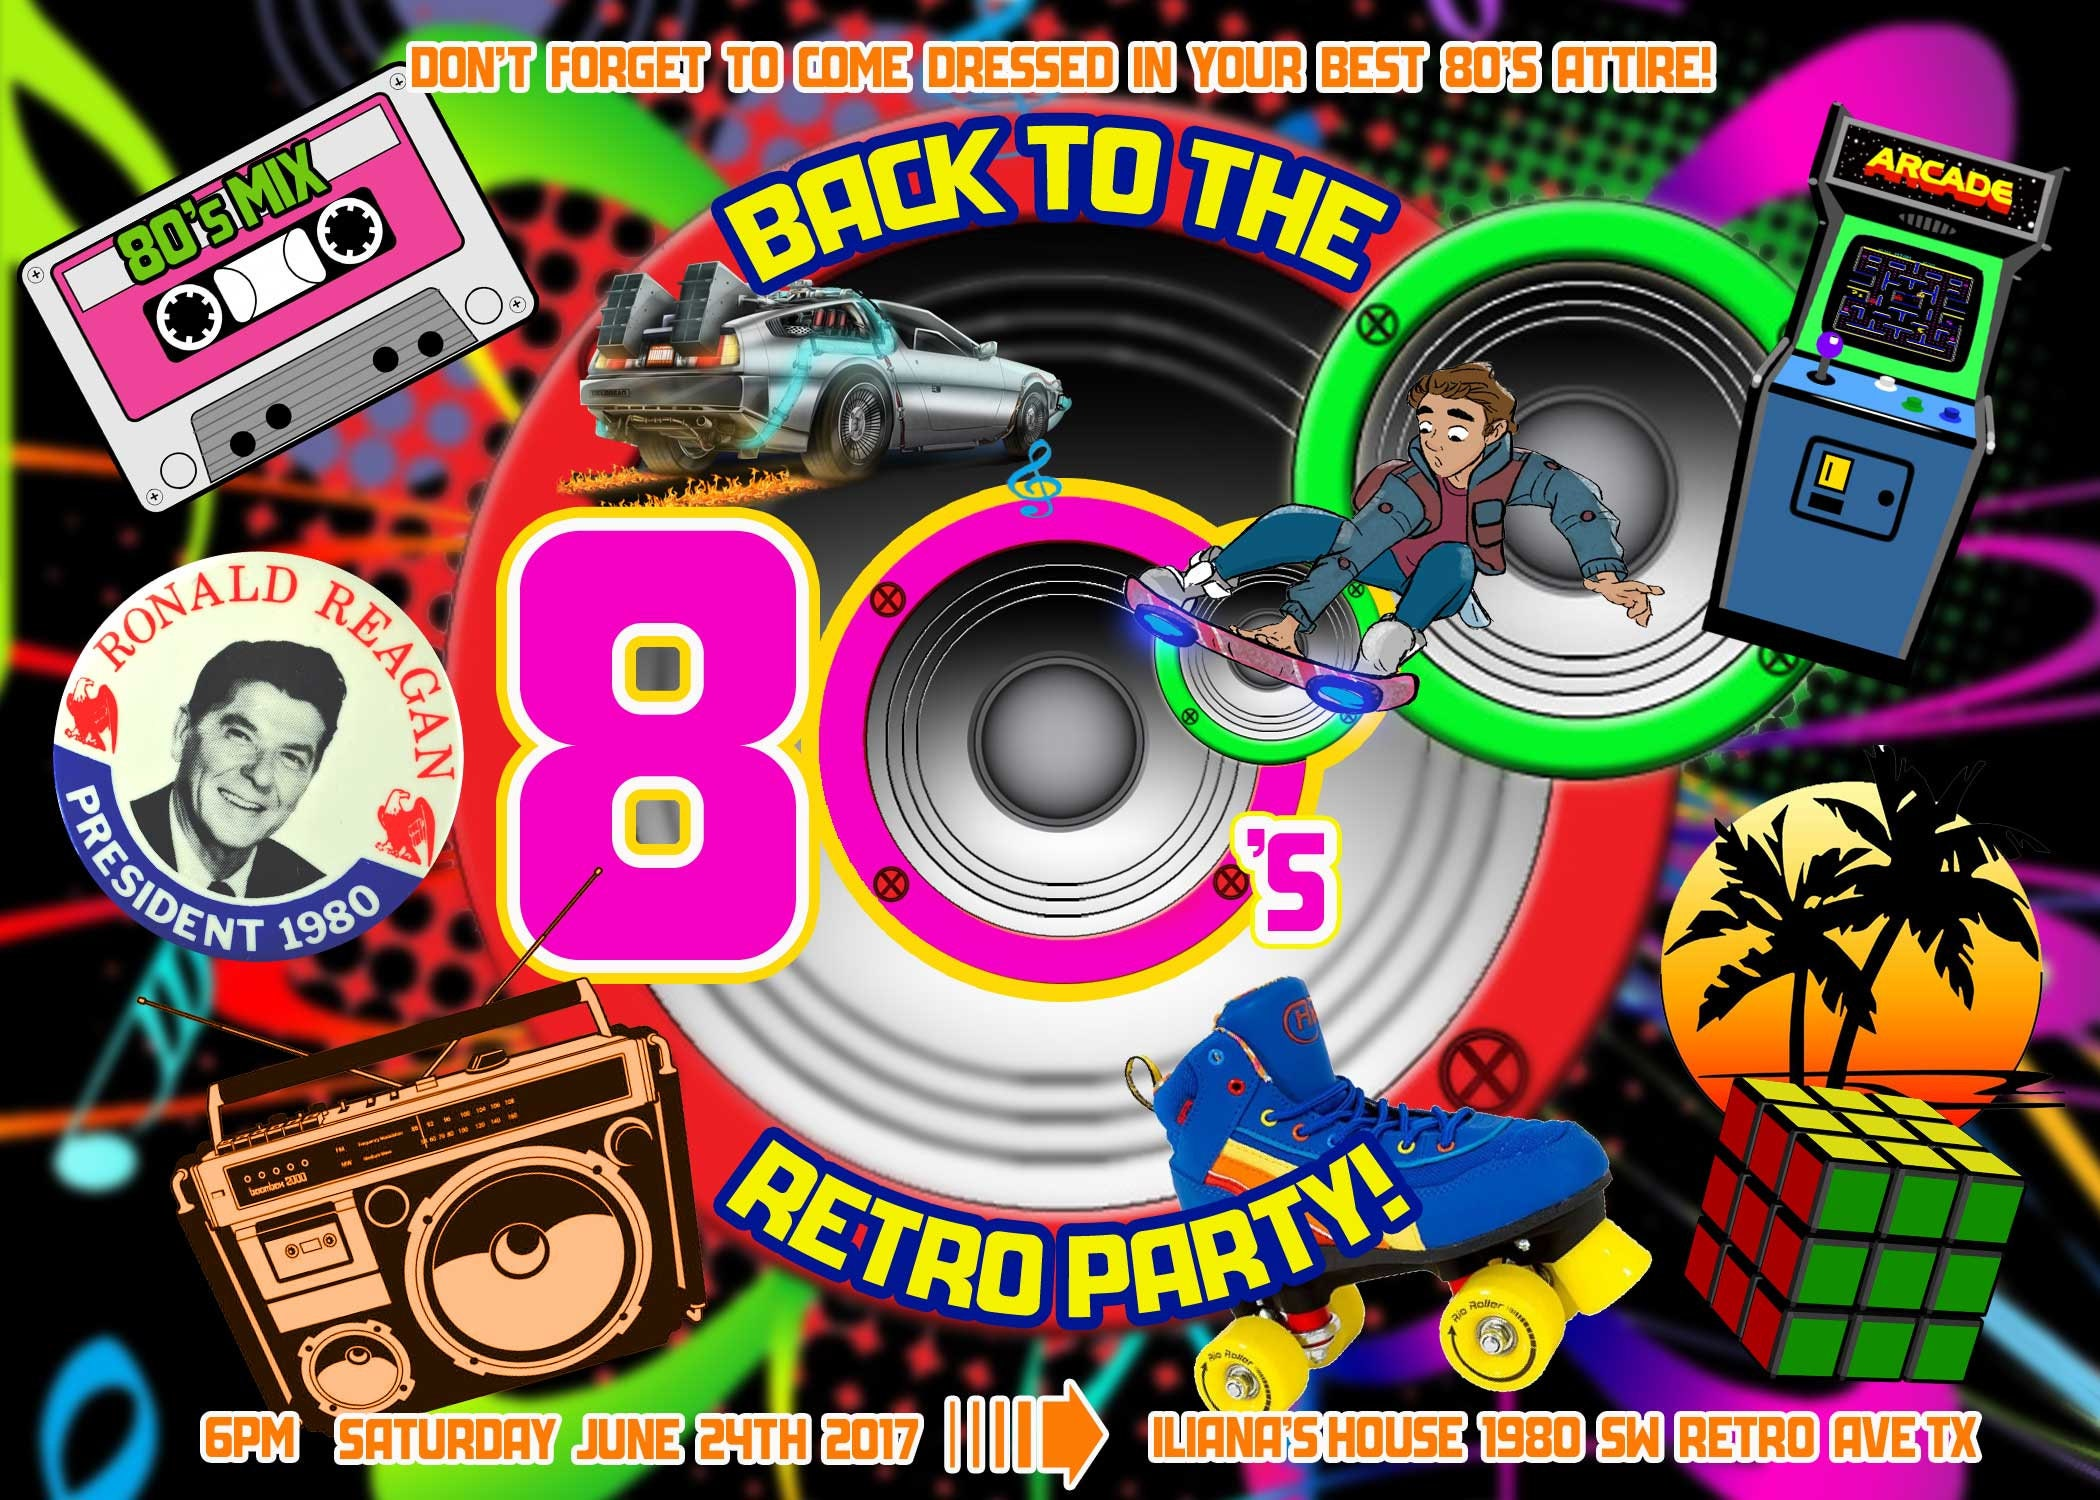 80s Invitation 80s Party 80s Birthday Invitations 80s Invite – 80s Theme Party Invitations